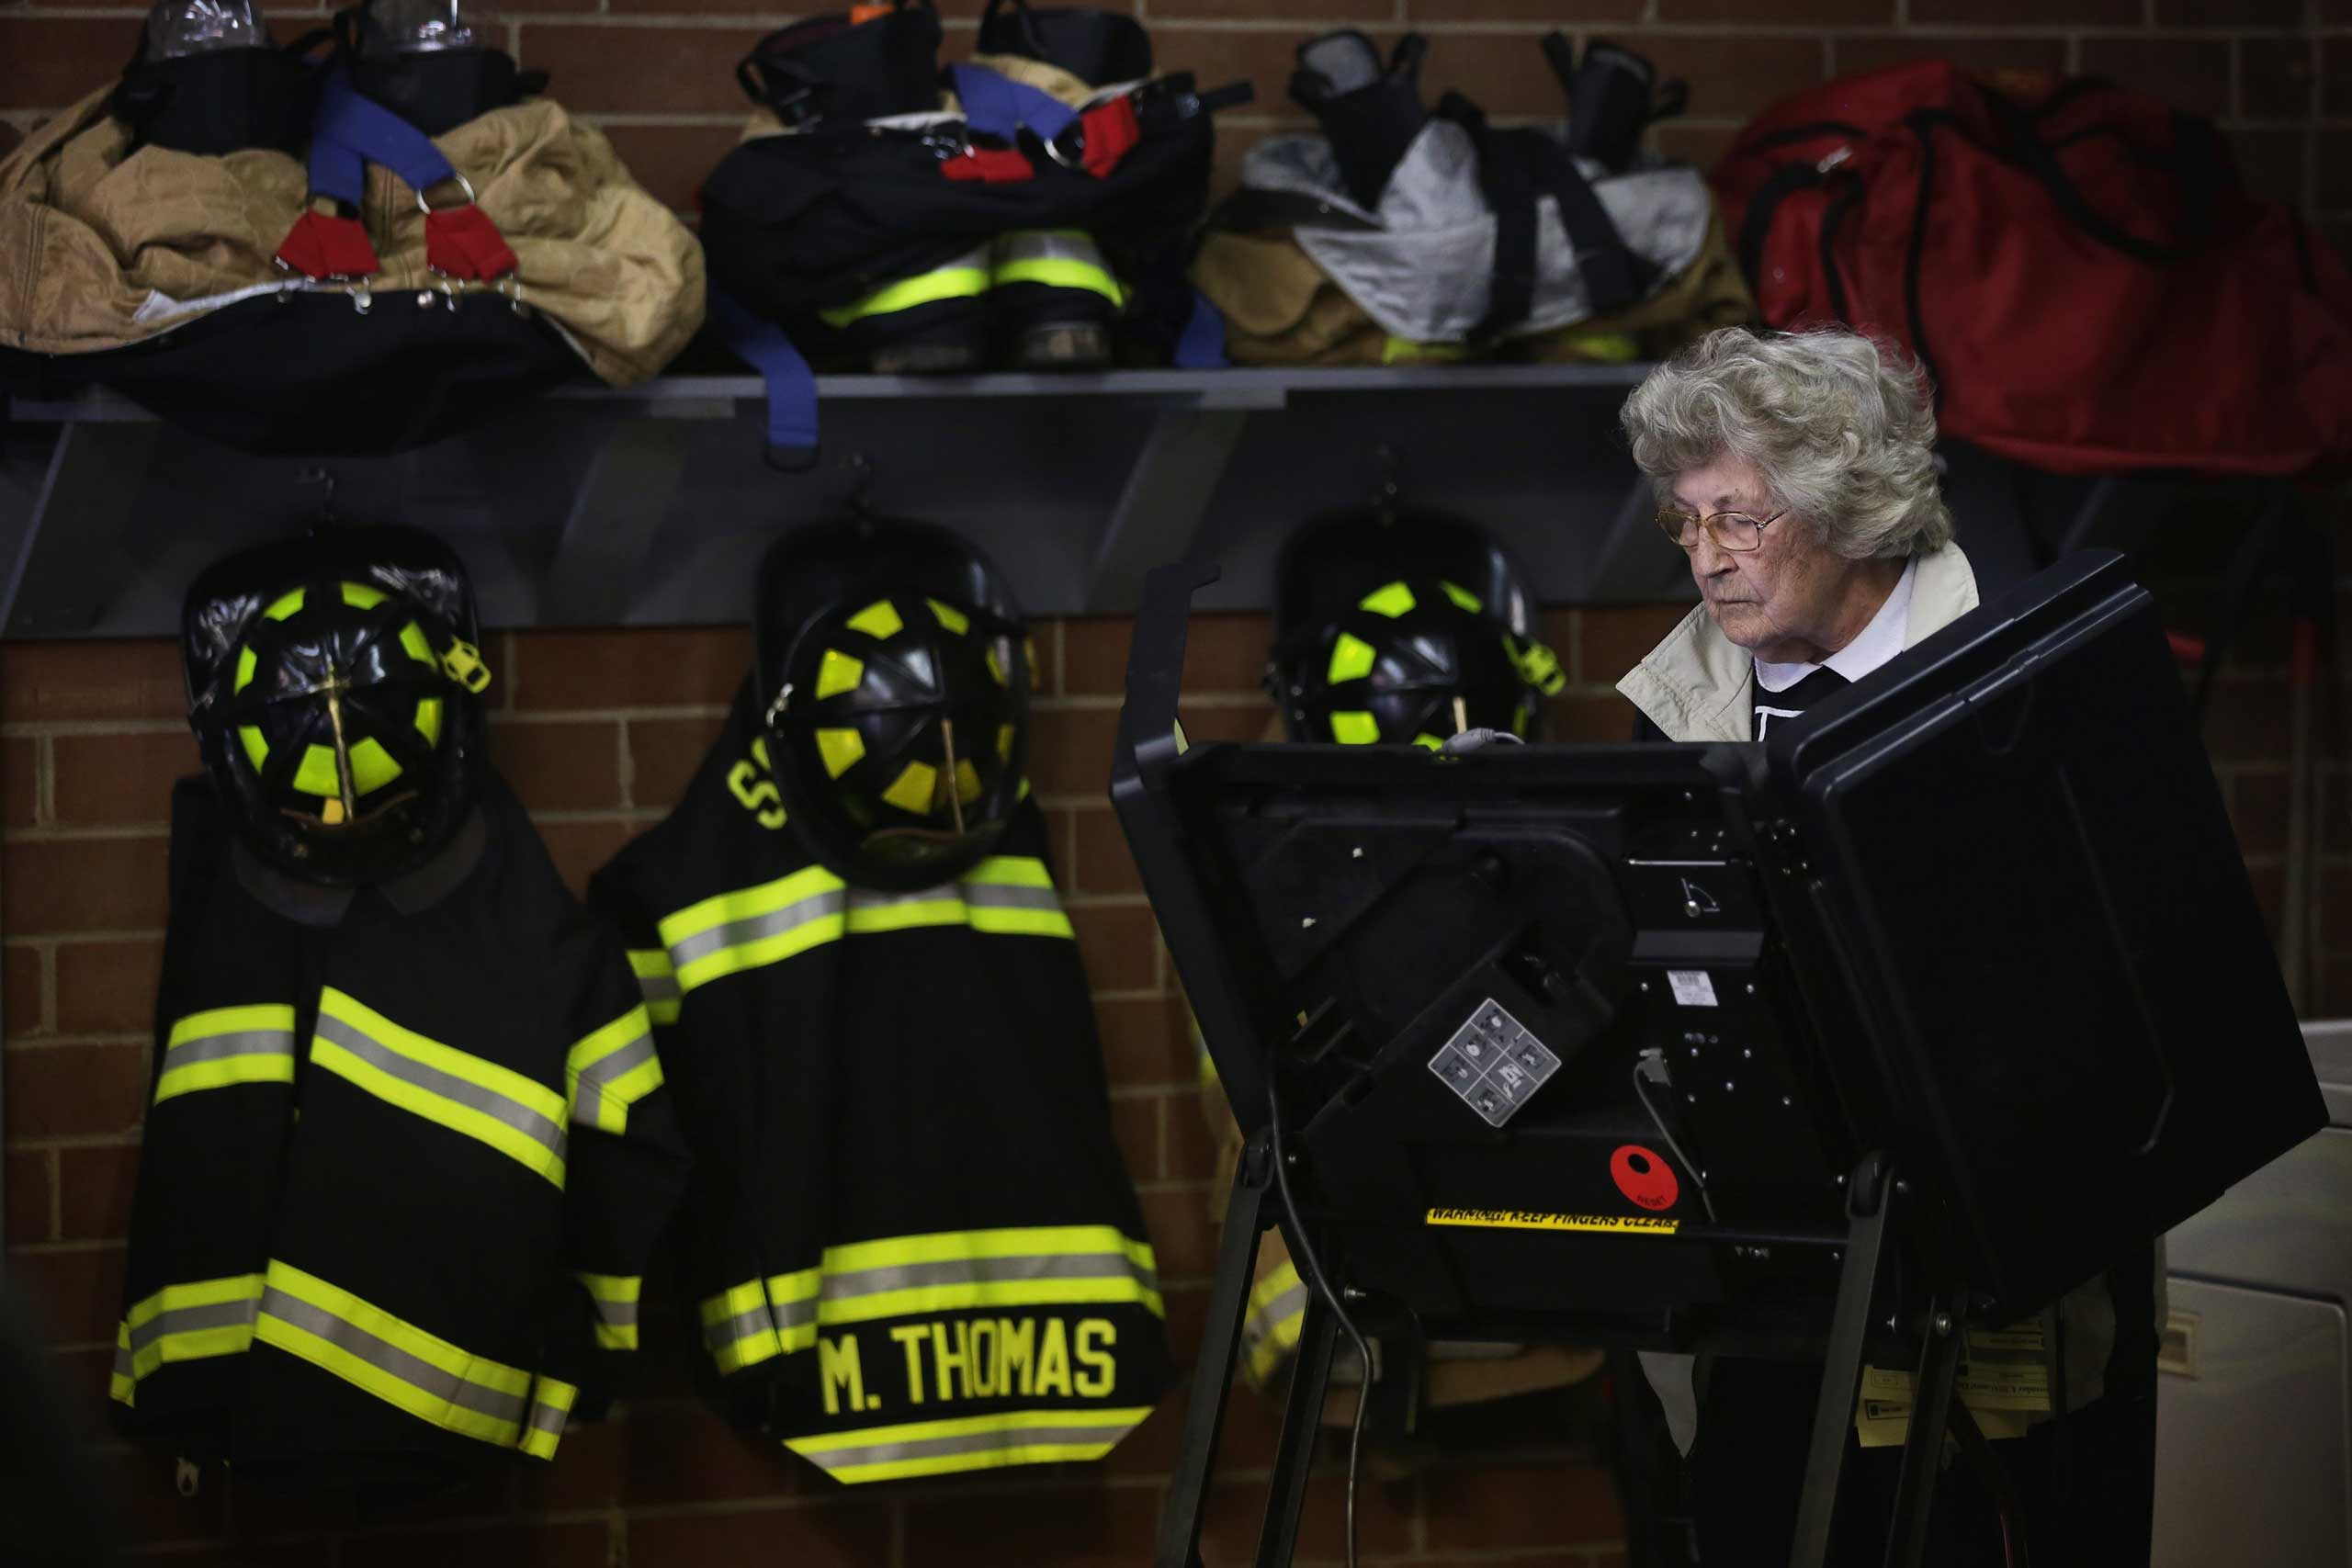 A voter casts her ballot at a fire station in Climax, N.C. on Nov. 4, 2014.